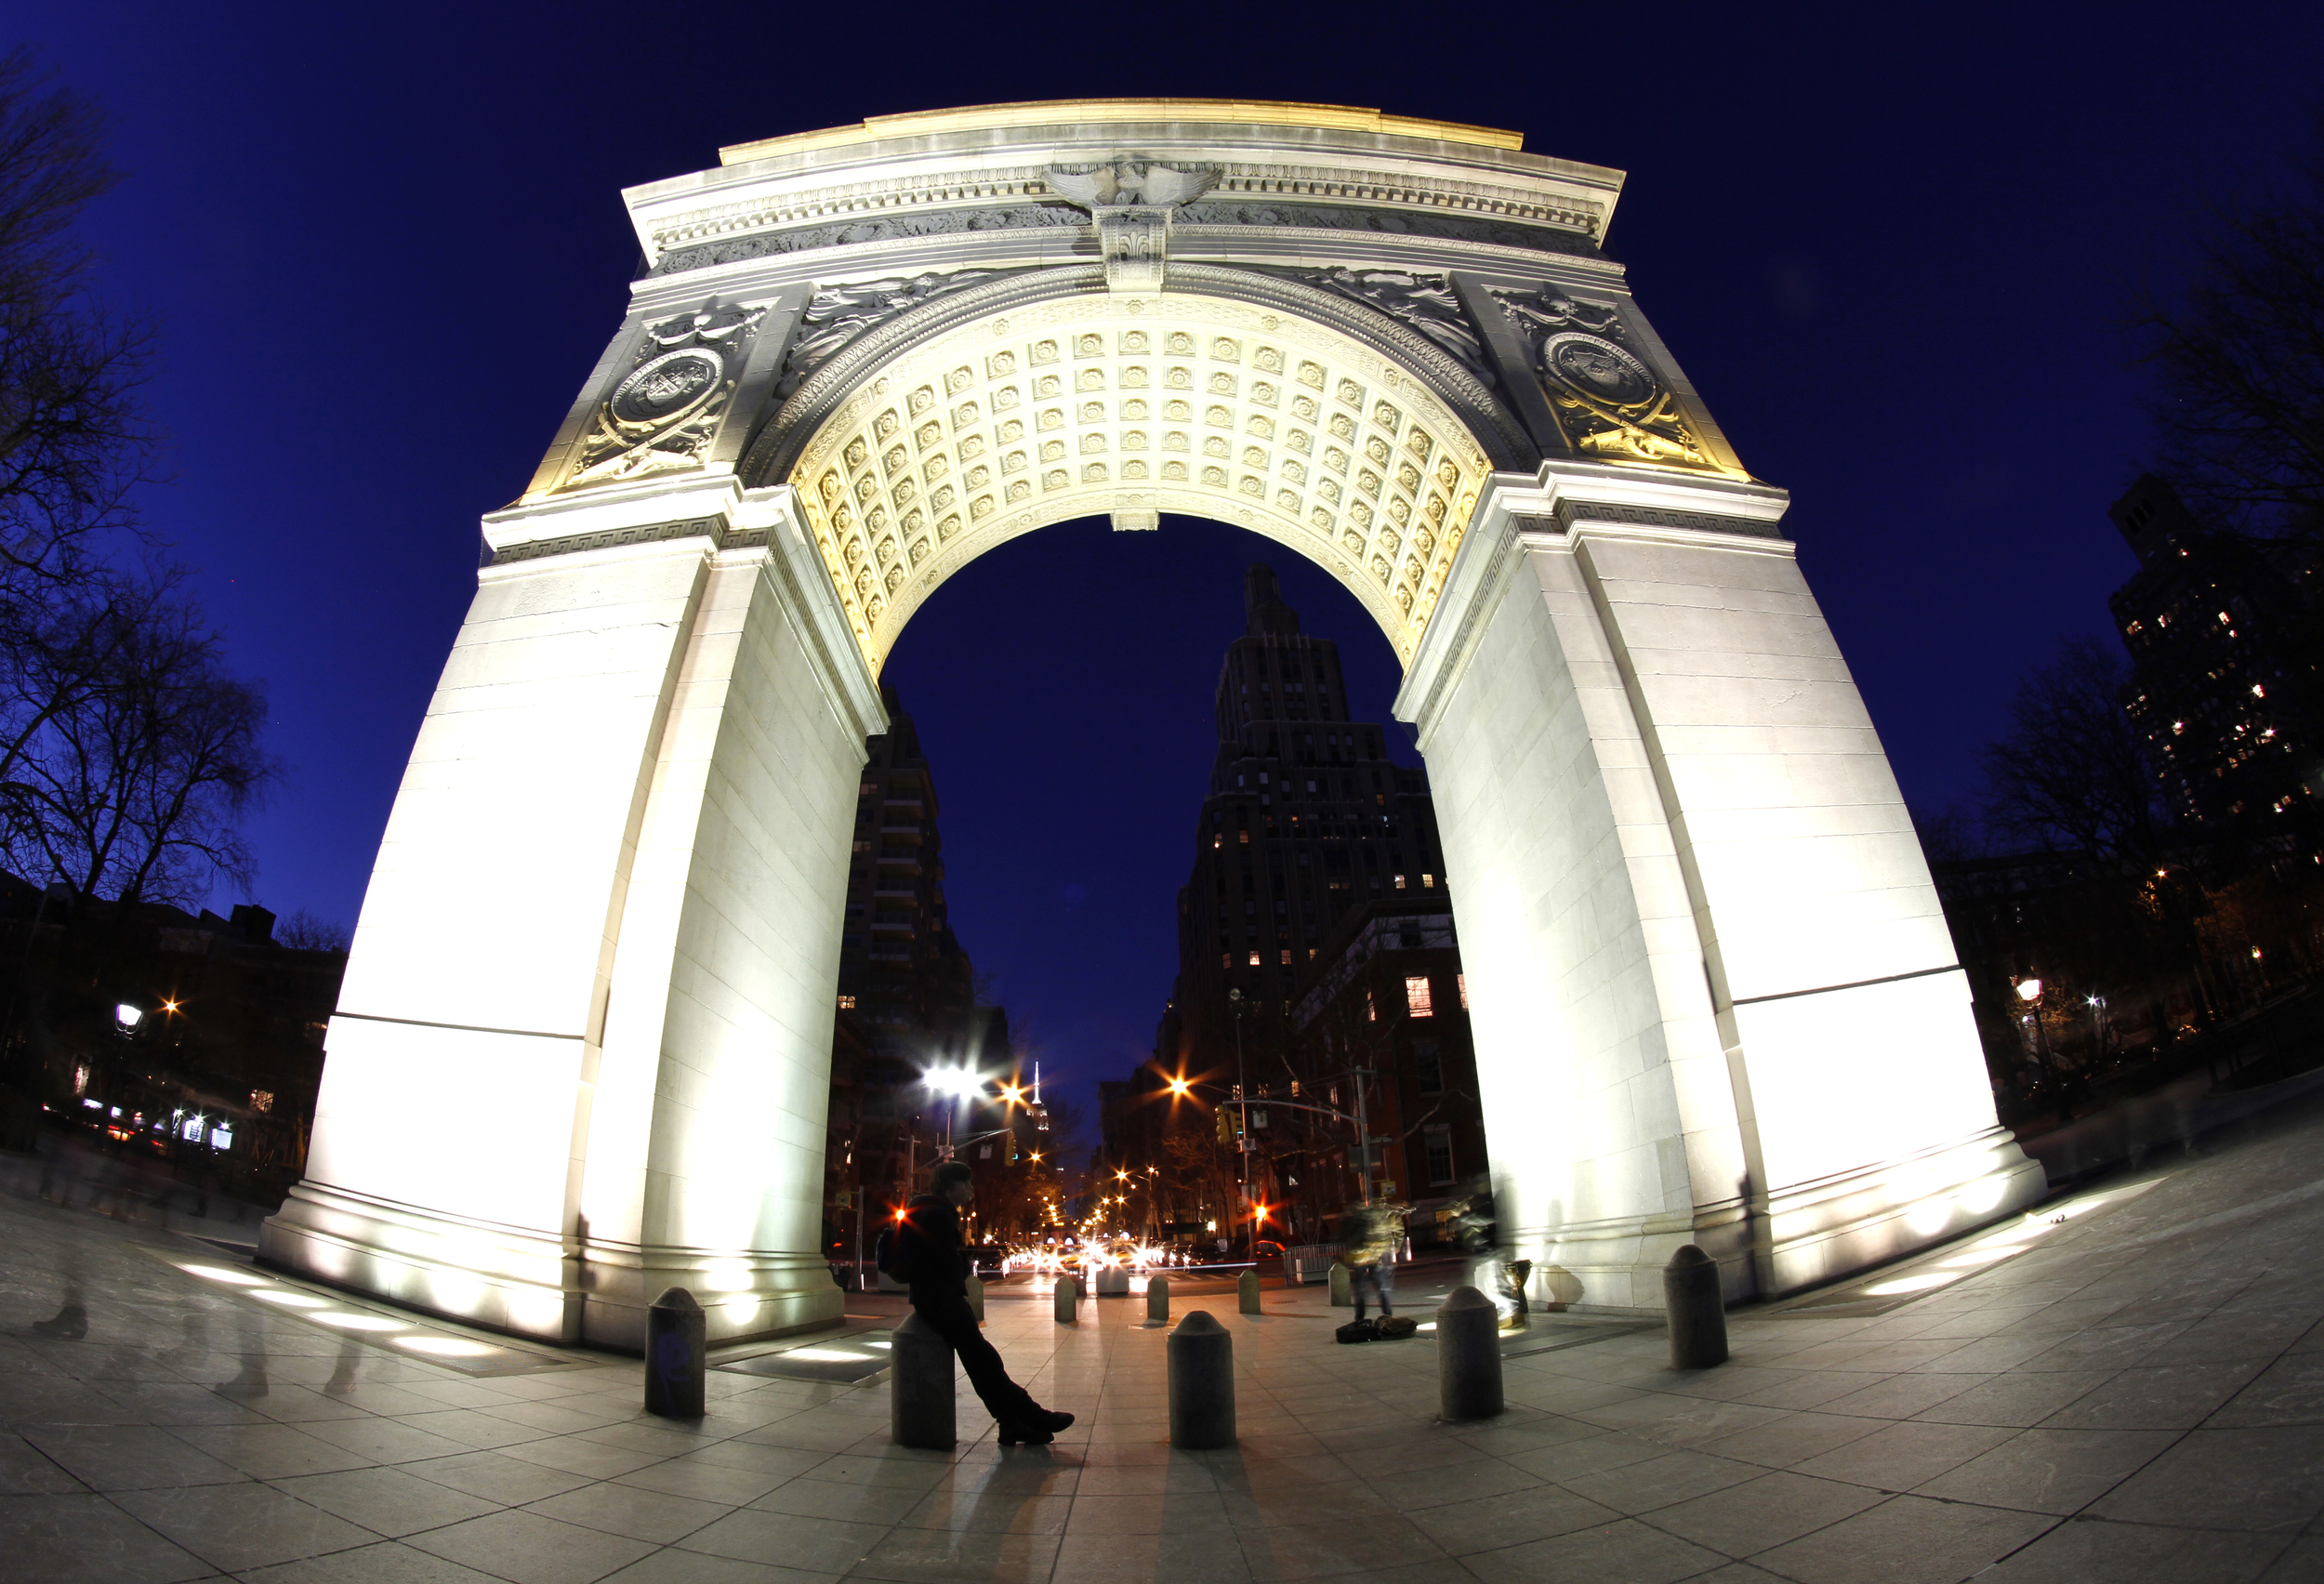 Washington Arch.  The starbursts of light are cars and stoplights on 5th Ave.